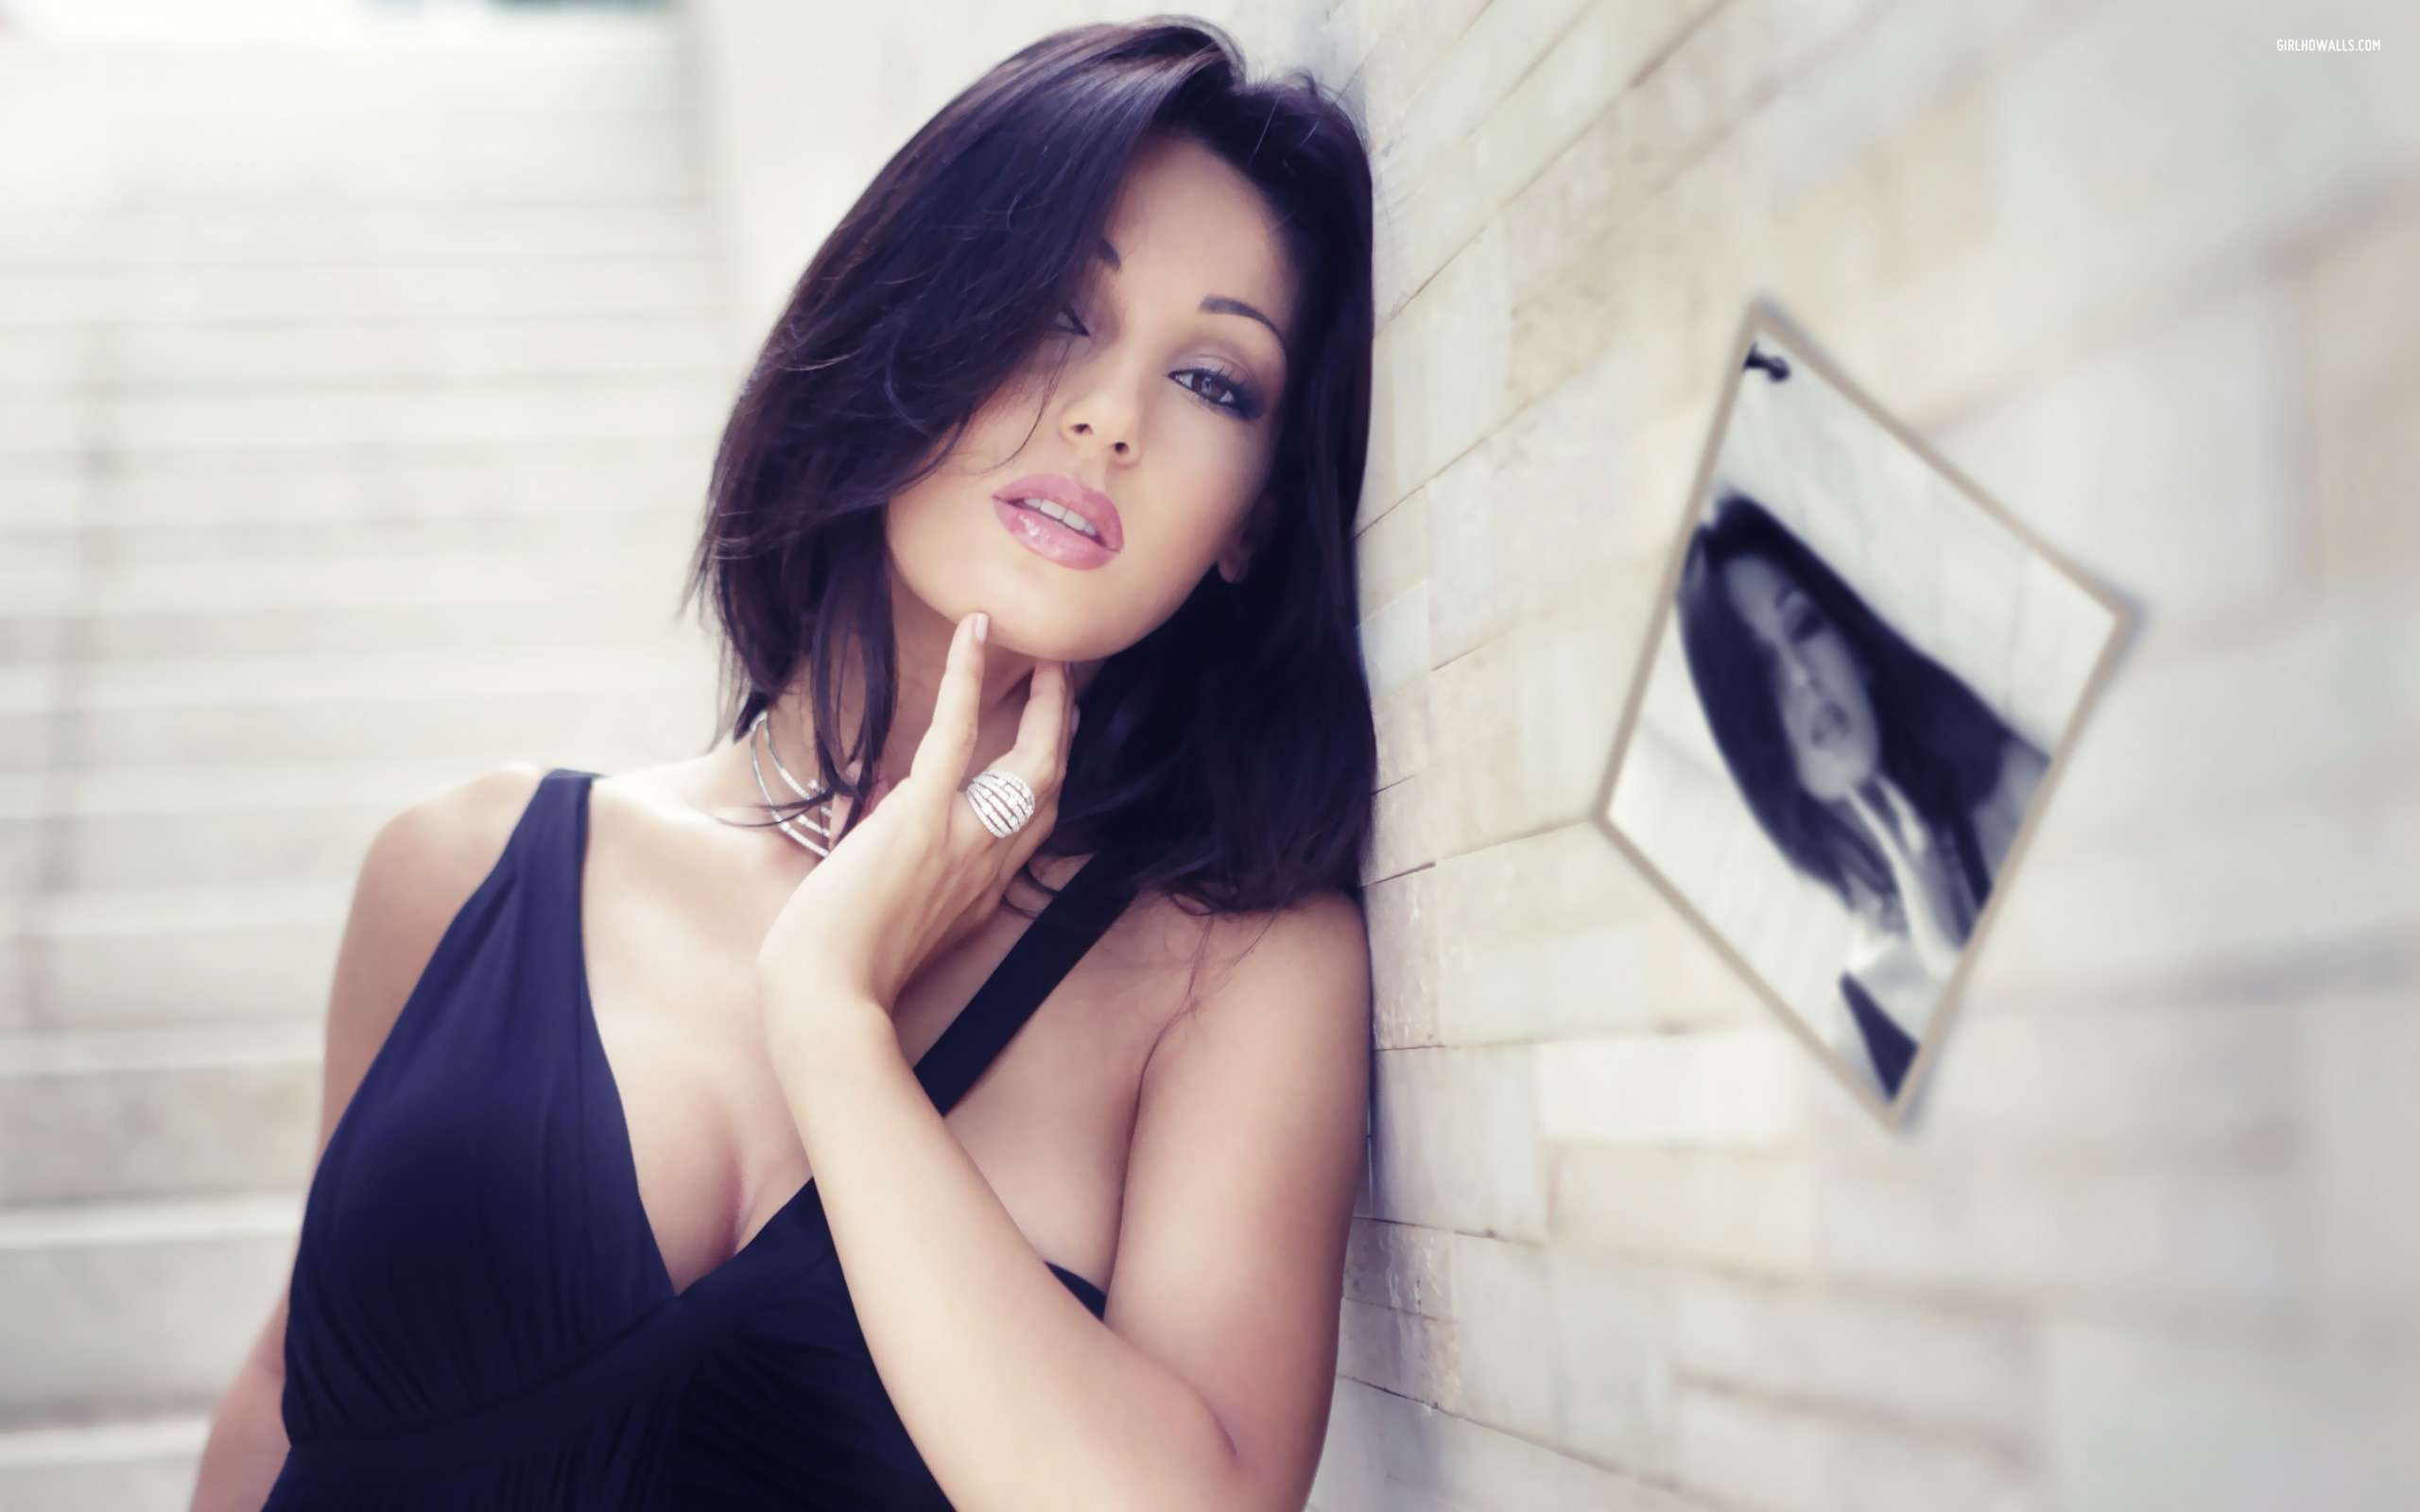 Indian Girl Wallpaper Free Download Anna Tatangelo 1 Wallpapers Hd Wallpapers